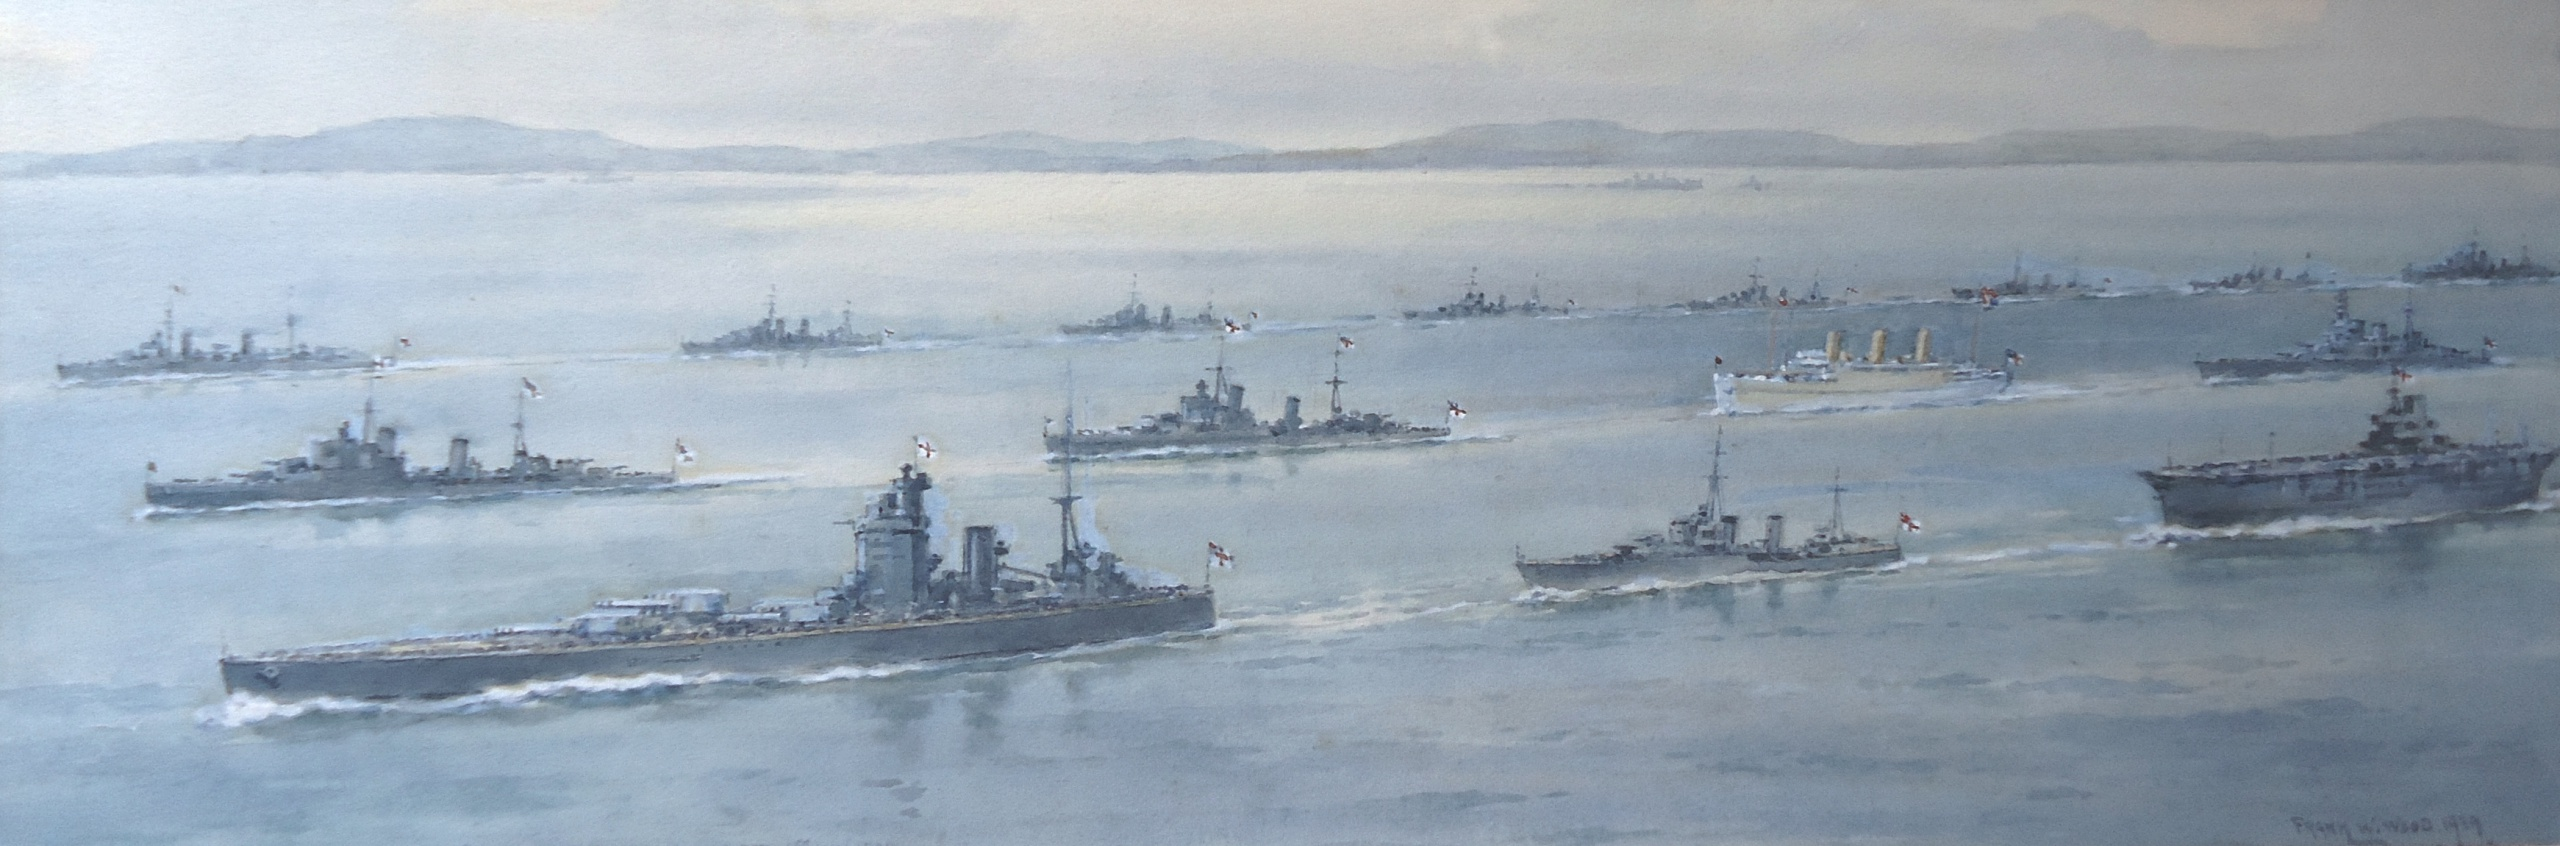 The Home Fleet escorts the Royal Squadron. May 1939